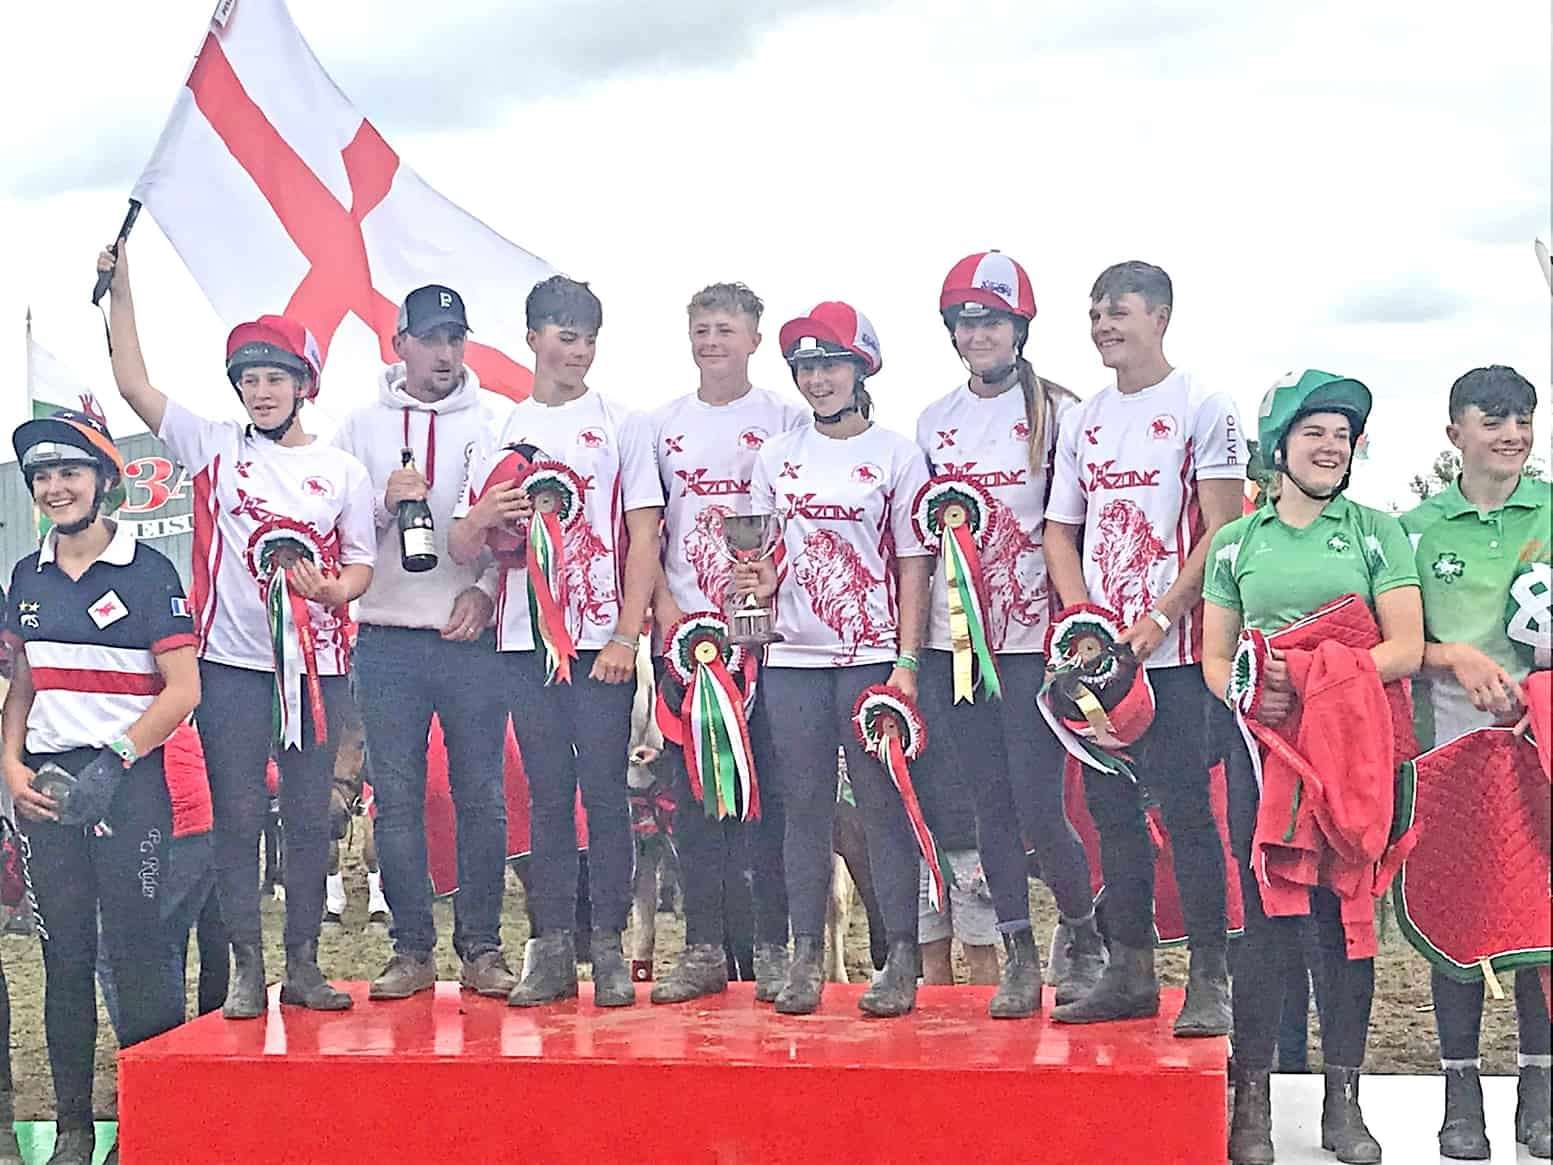 The England Mounted team took the honours at the U17 World Championships